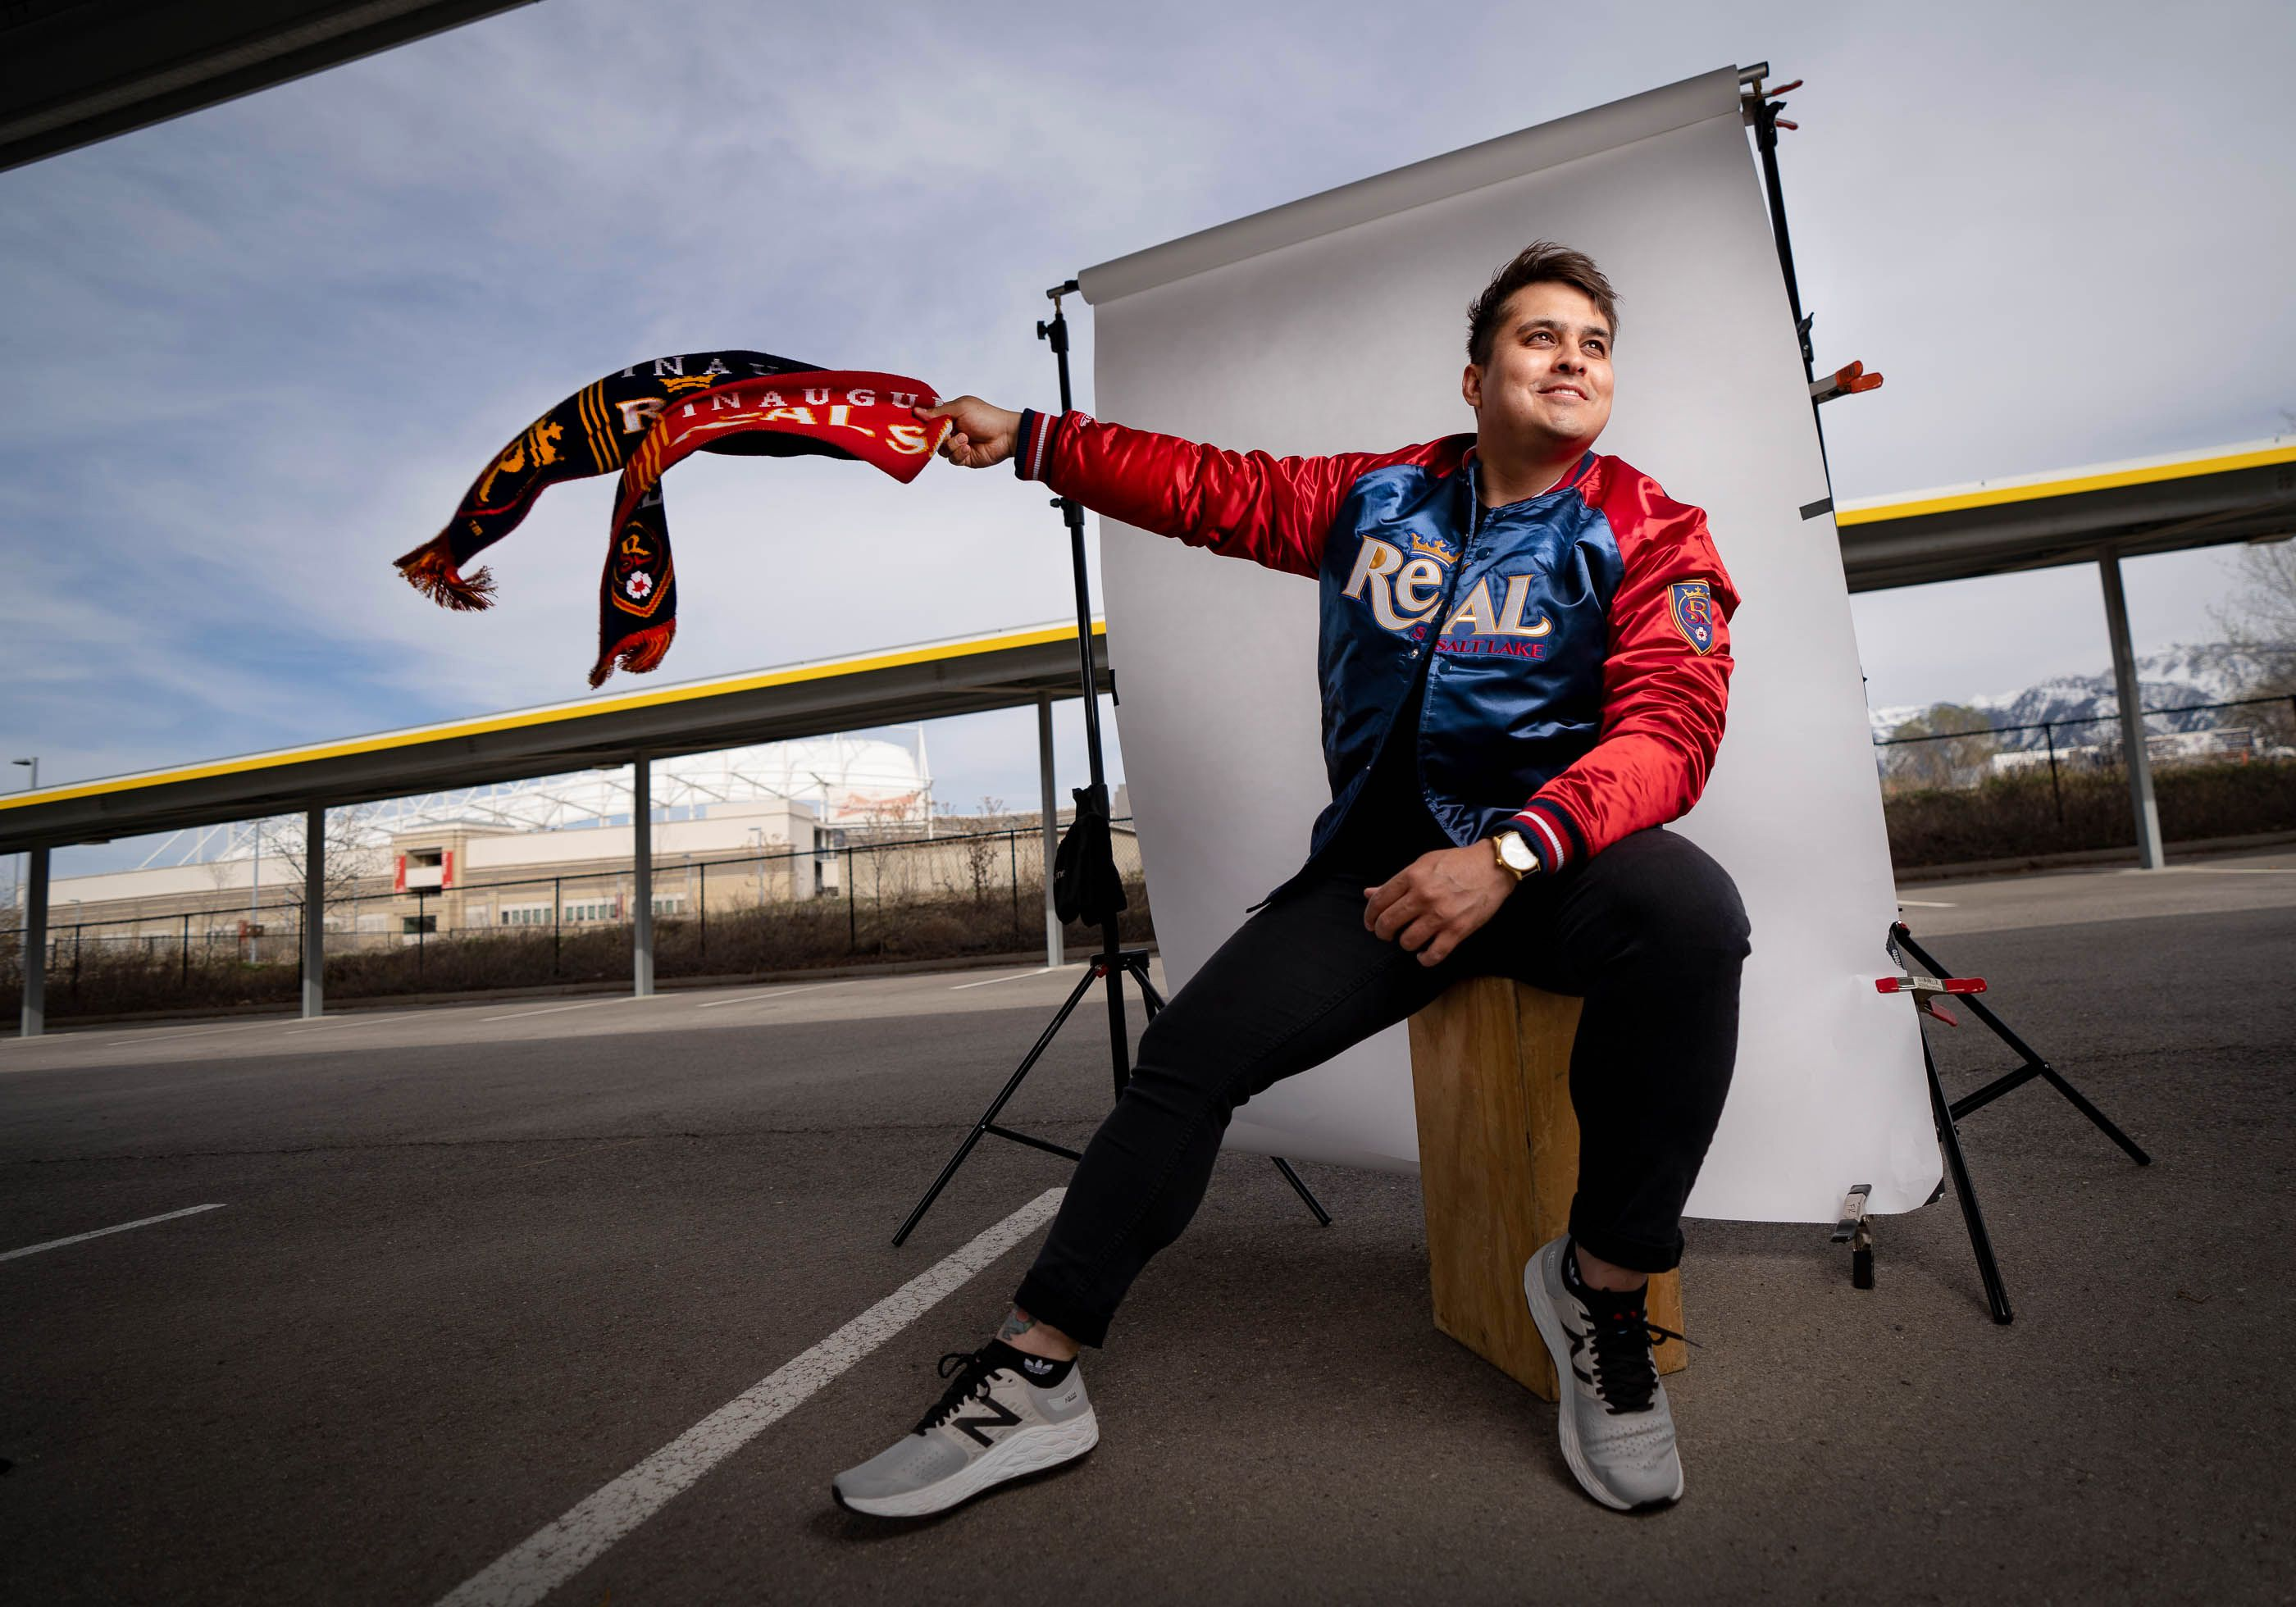 (Francisco Kjolseth  | The Salt Lake Tribune) Andy Muñoz, whose father is an ardent fan of Mexican soccer, has rooted for RSL for 12 years. He says the connection between Hispanic fans and RSL has dwindled in recent years and needs some rededication.